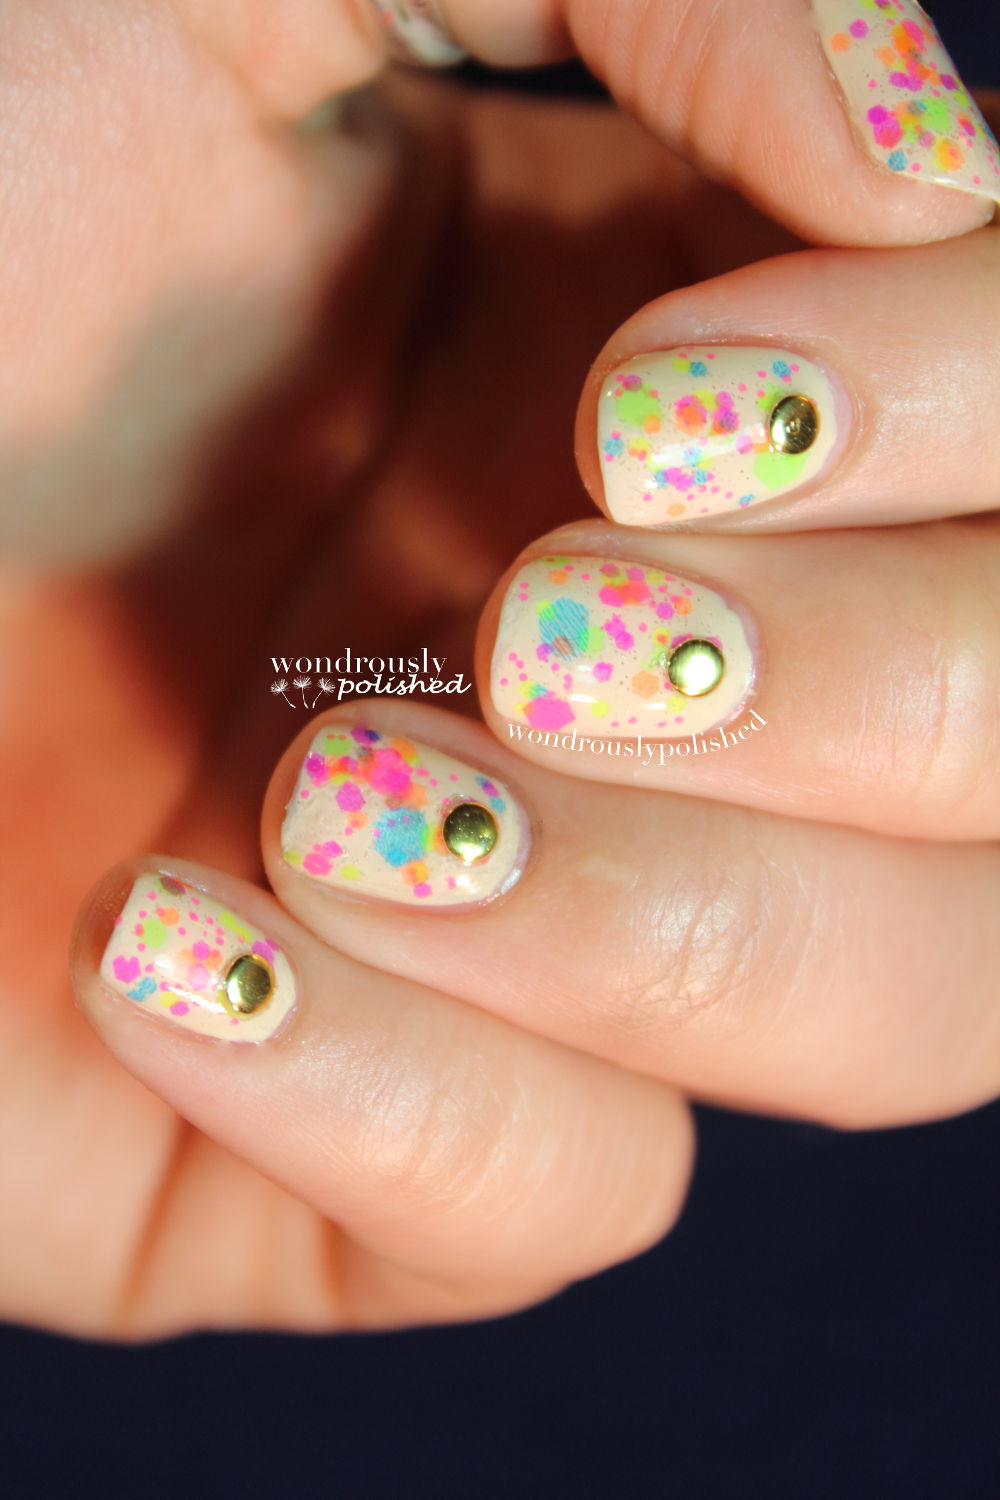 Wondrously Polished February Nail Art Challenge: Wondrously Polished: Clowning Around Birthday Nails